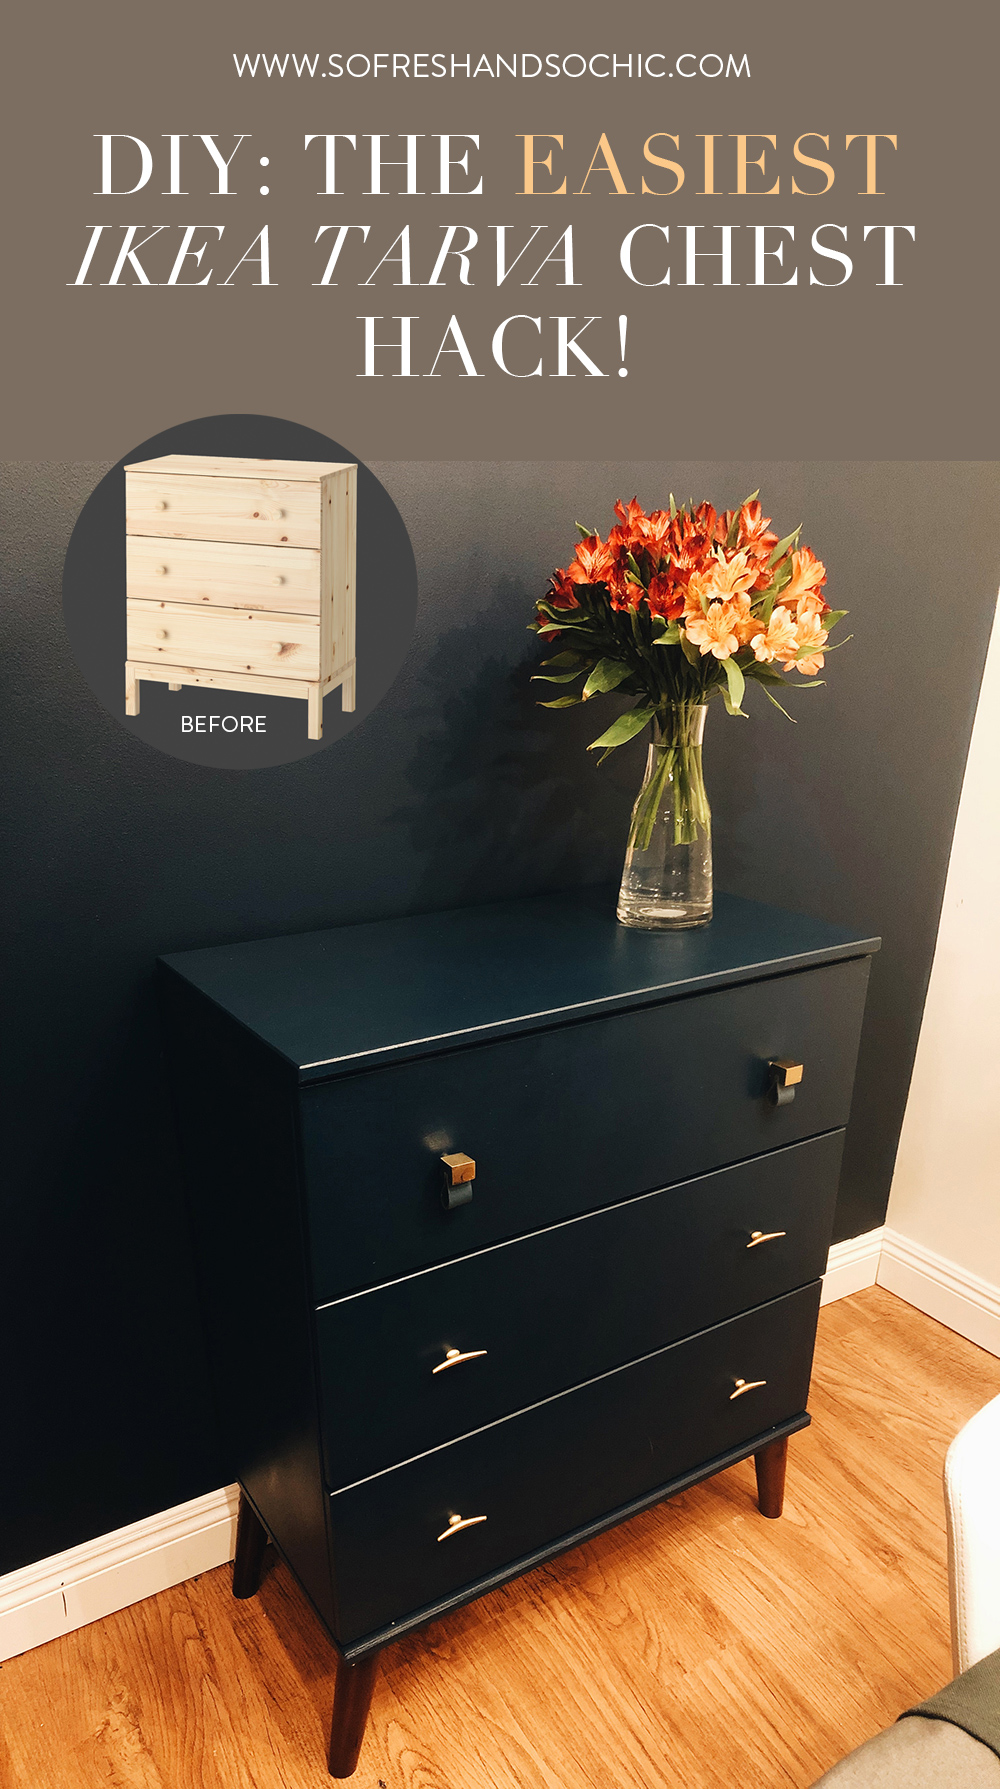 The Easiest DIY Ikea Tarva Chest Hack! www.sofreshandsochic.com